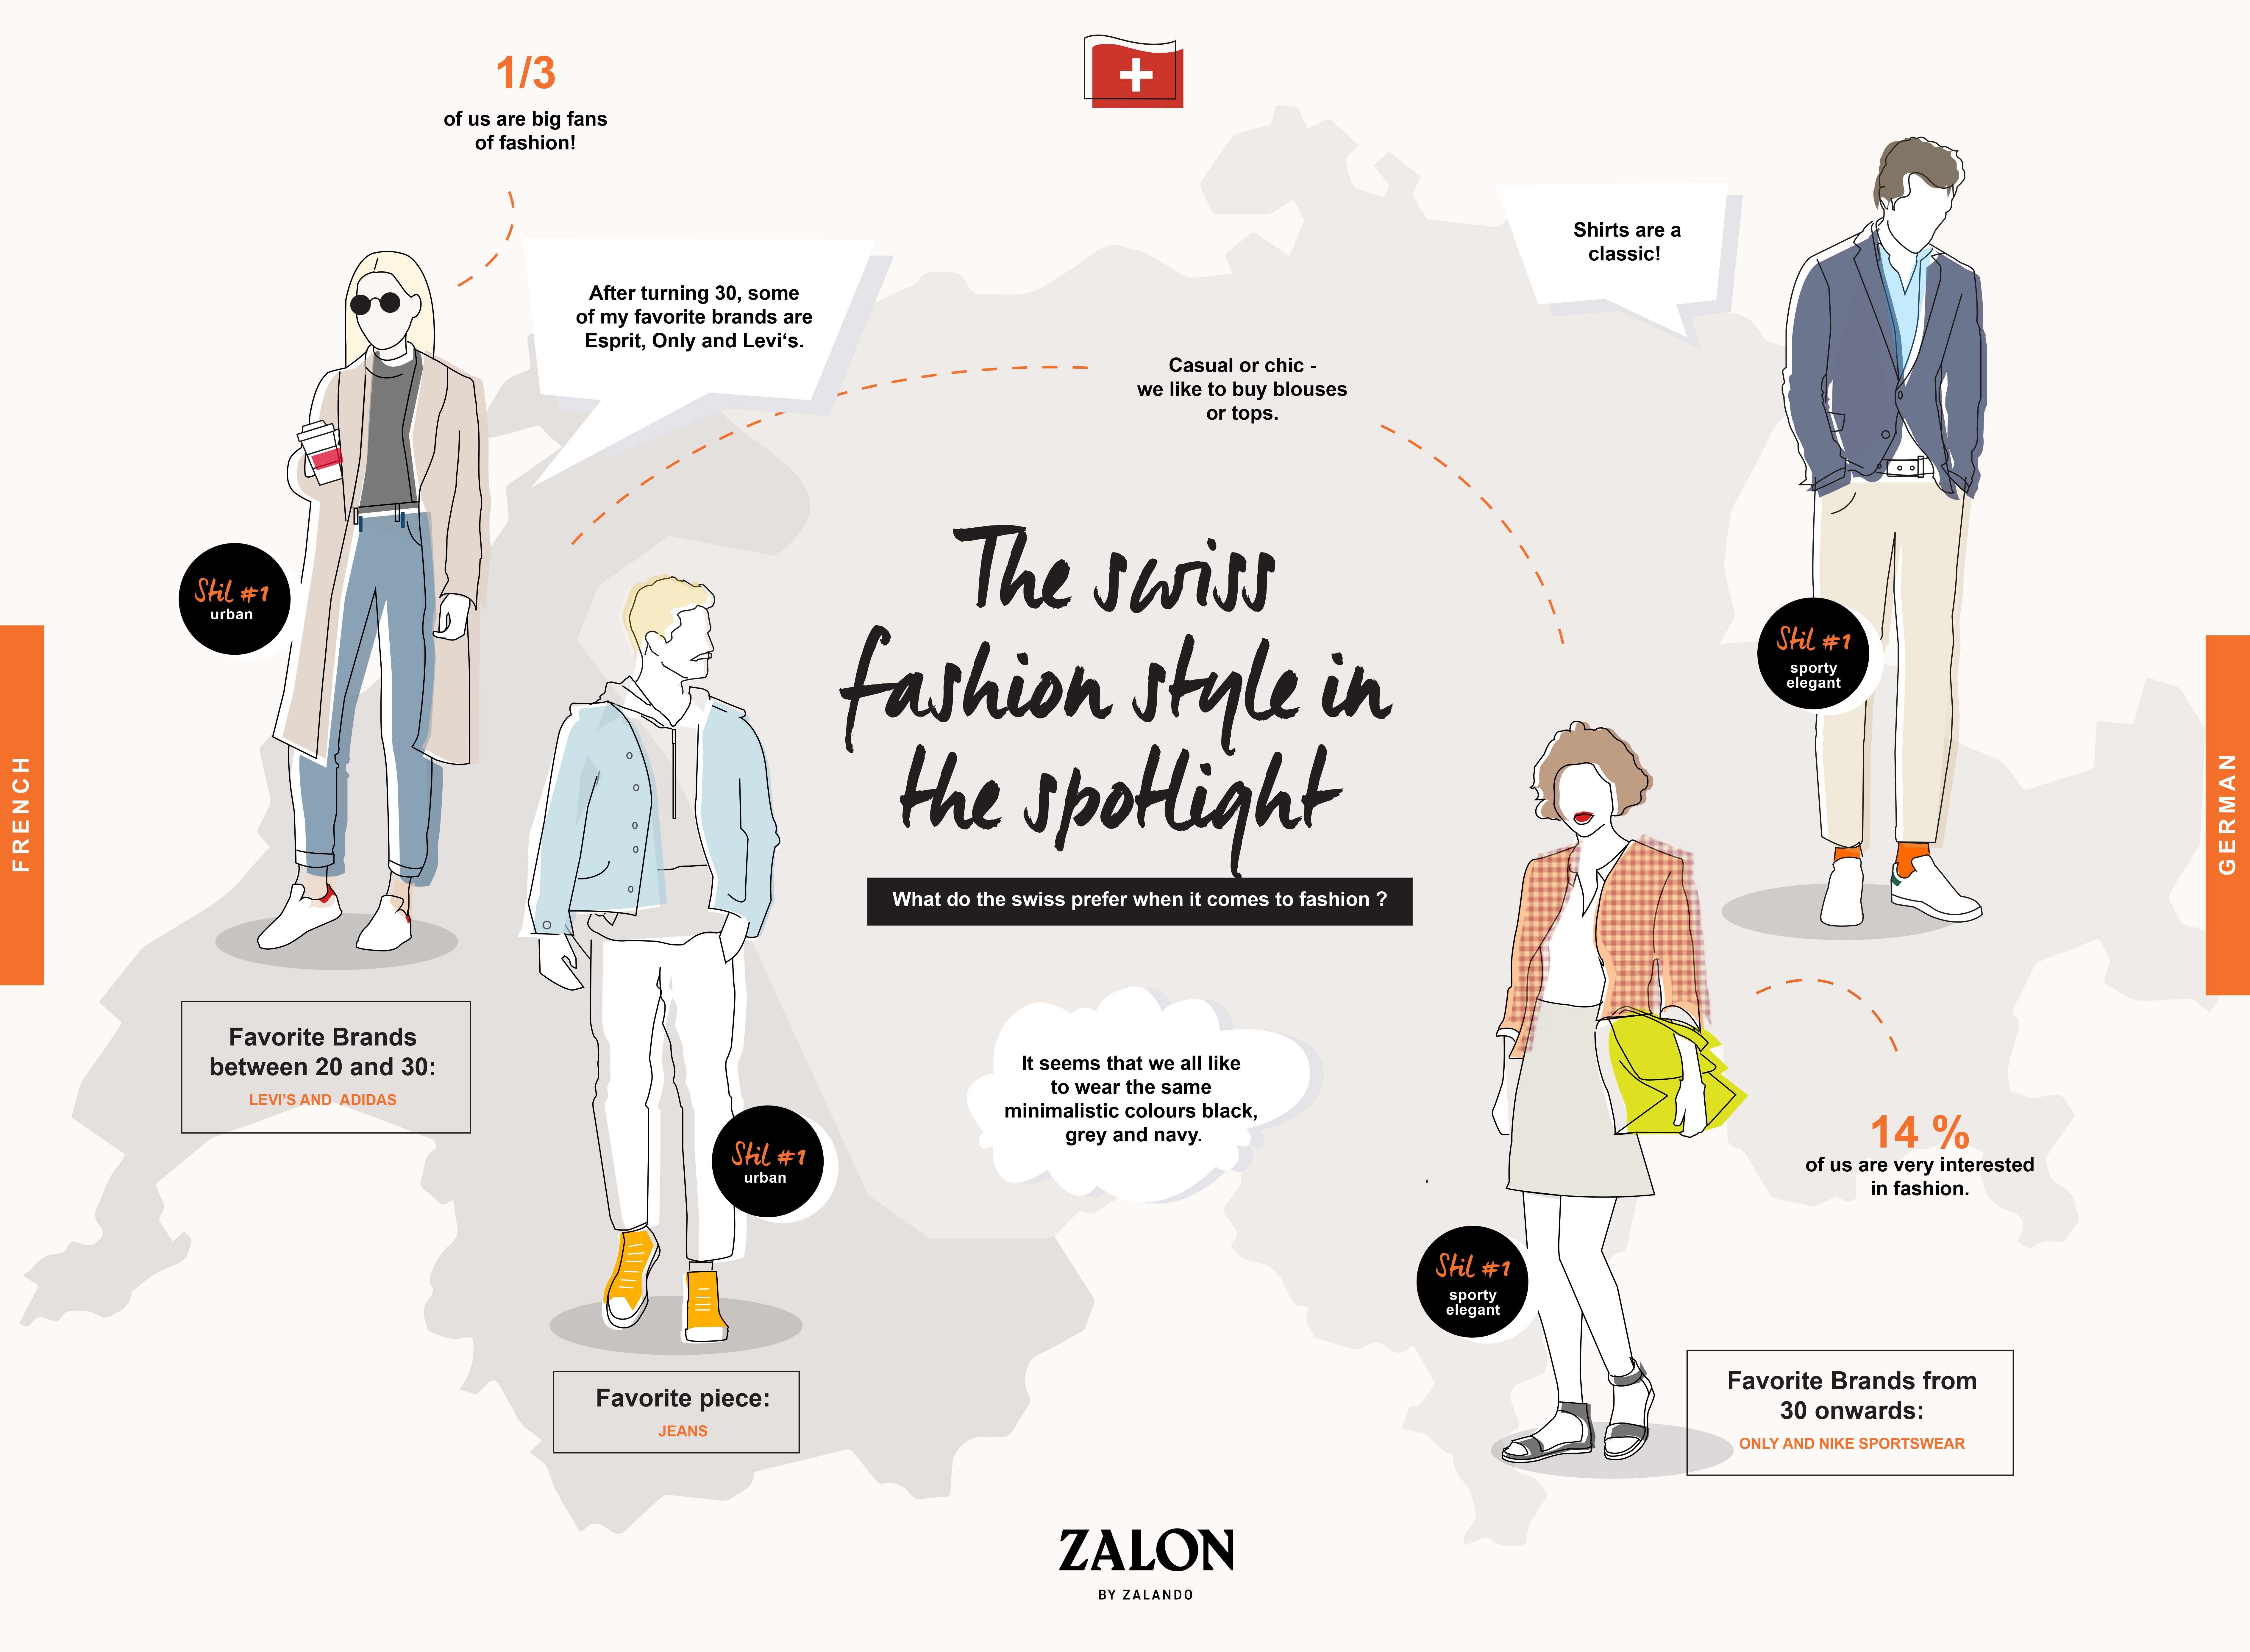 Zalon_Infographic_Spotlight on Switzerland